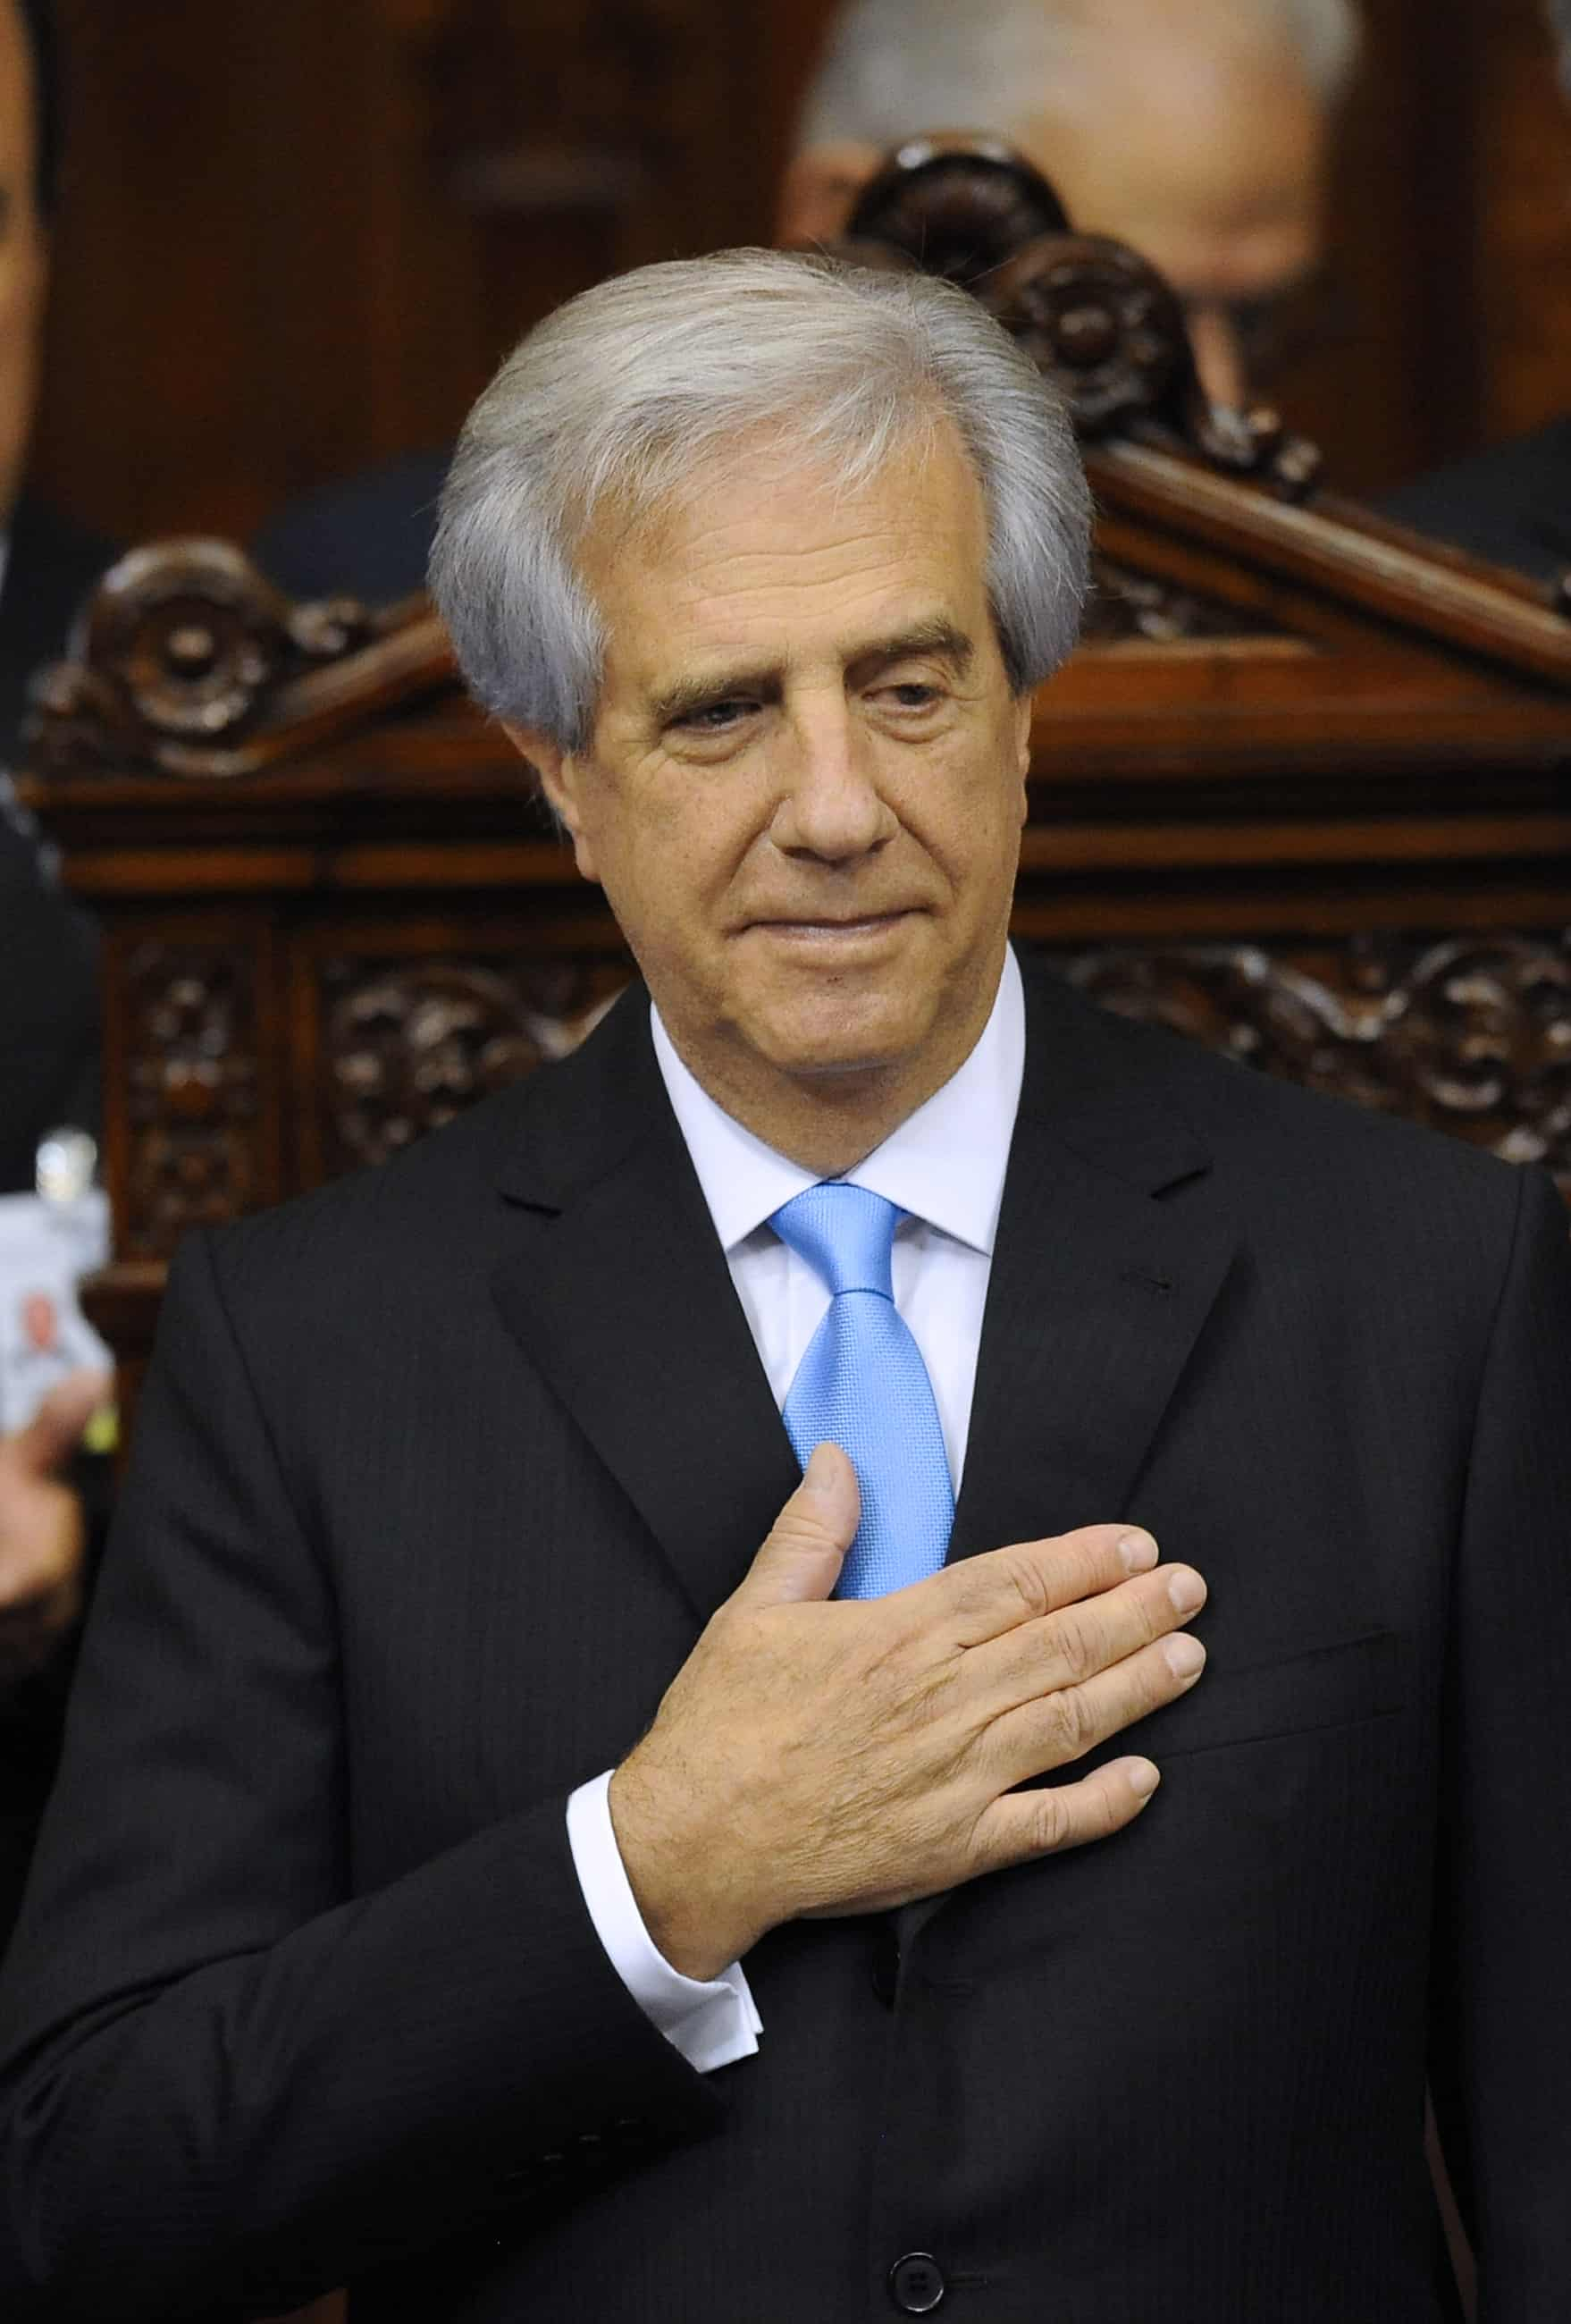 Newly sworn-in Uruguayan President Tabaré Vázquez is seen at the Congress in Montevideo on March 1, 2015.